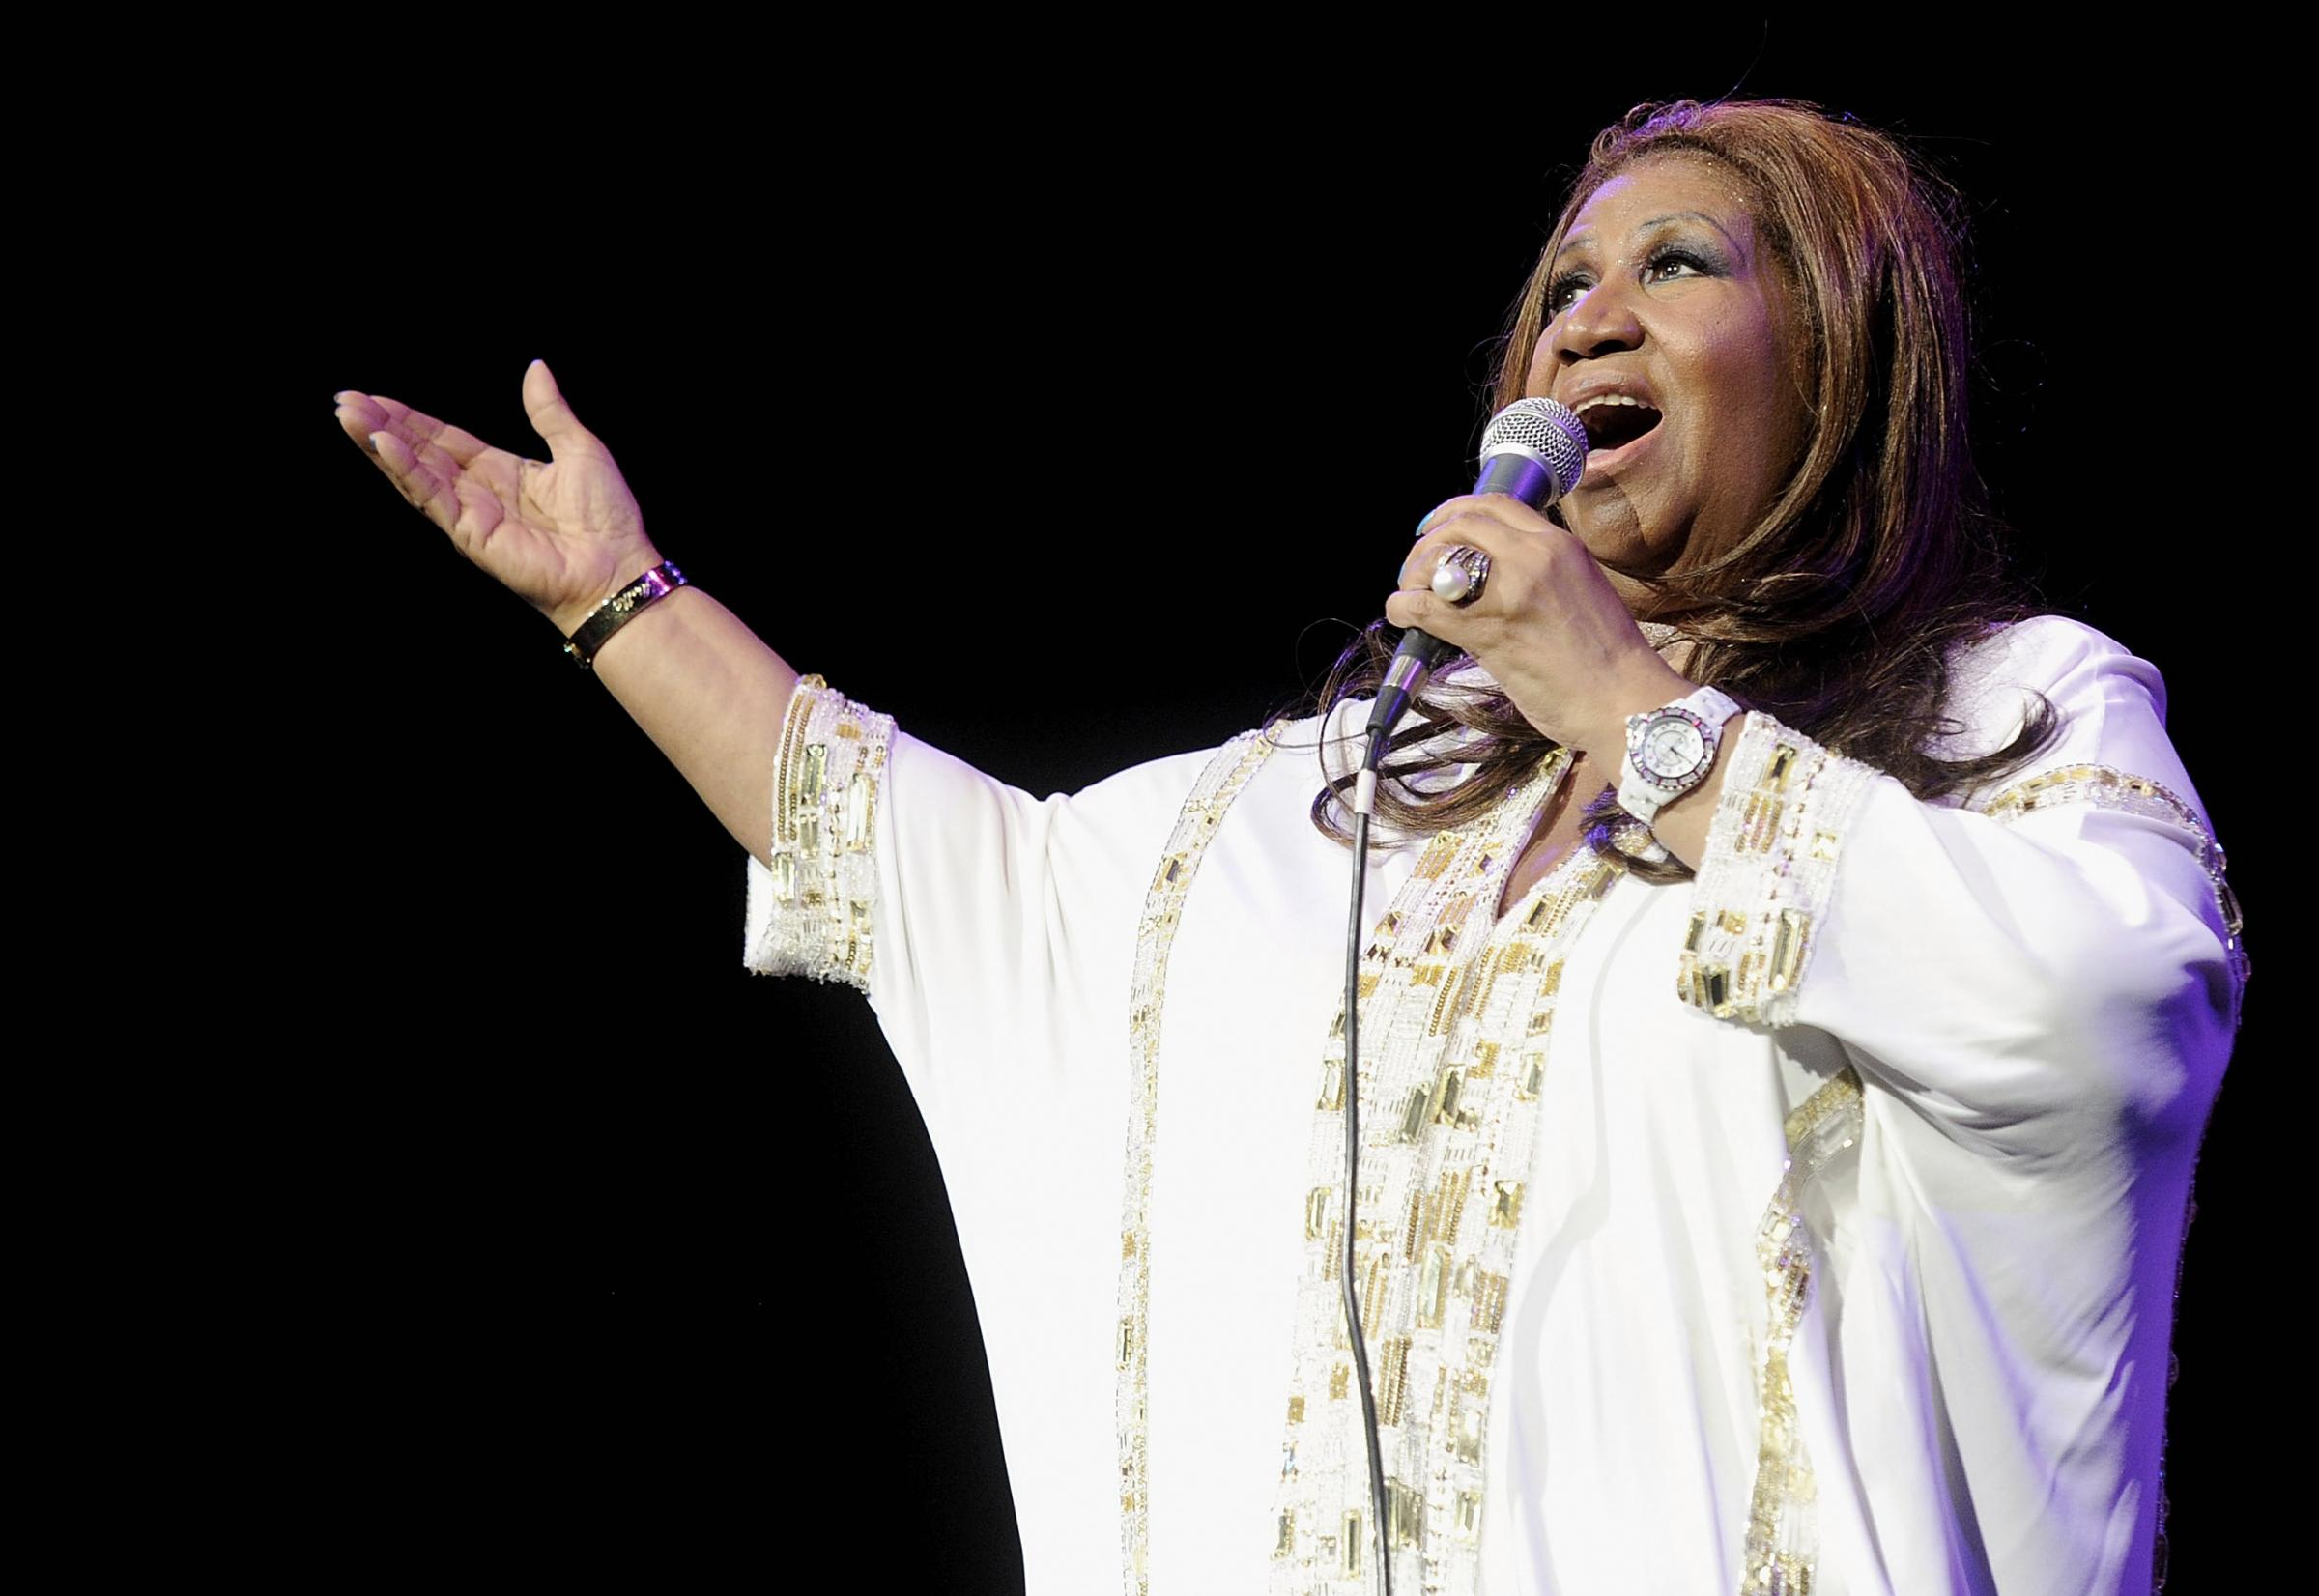 The incomparable Aretha Franklin died on Thursday in Detroit at the age of 76